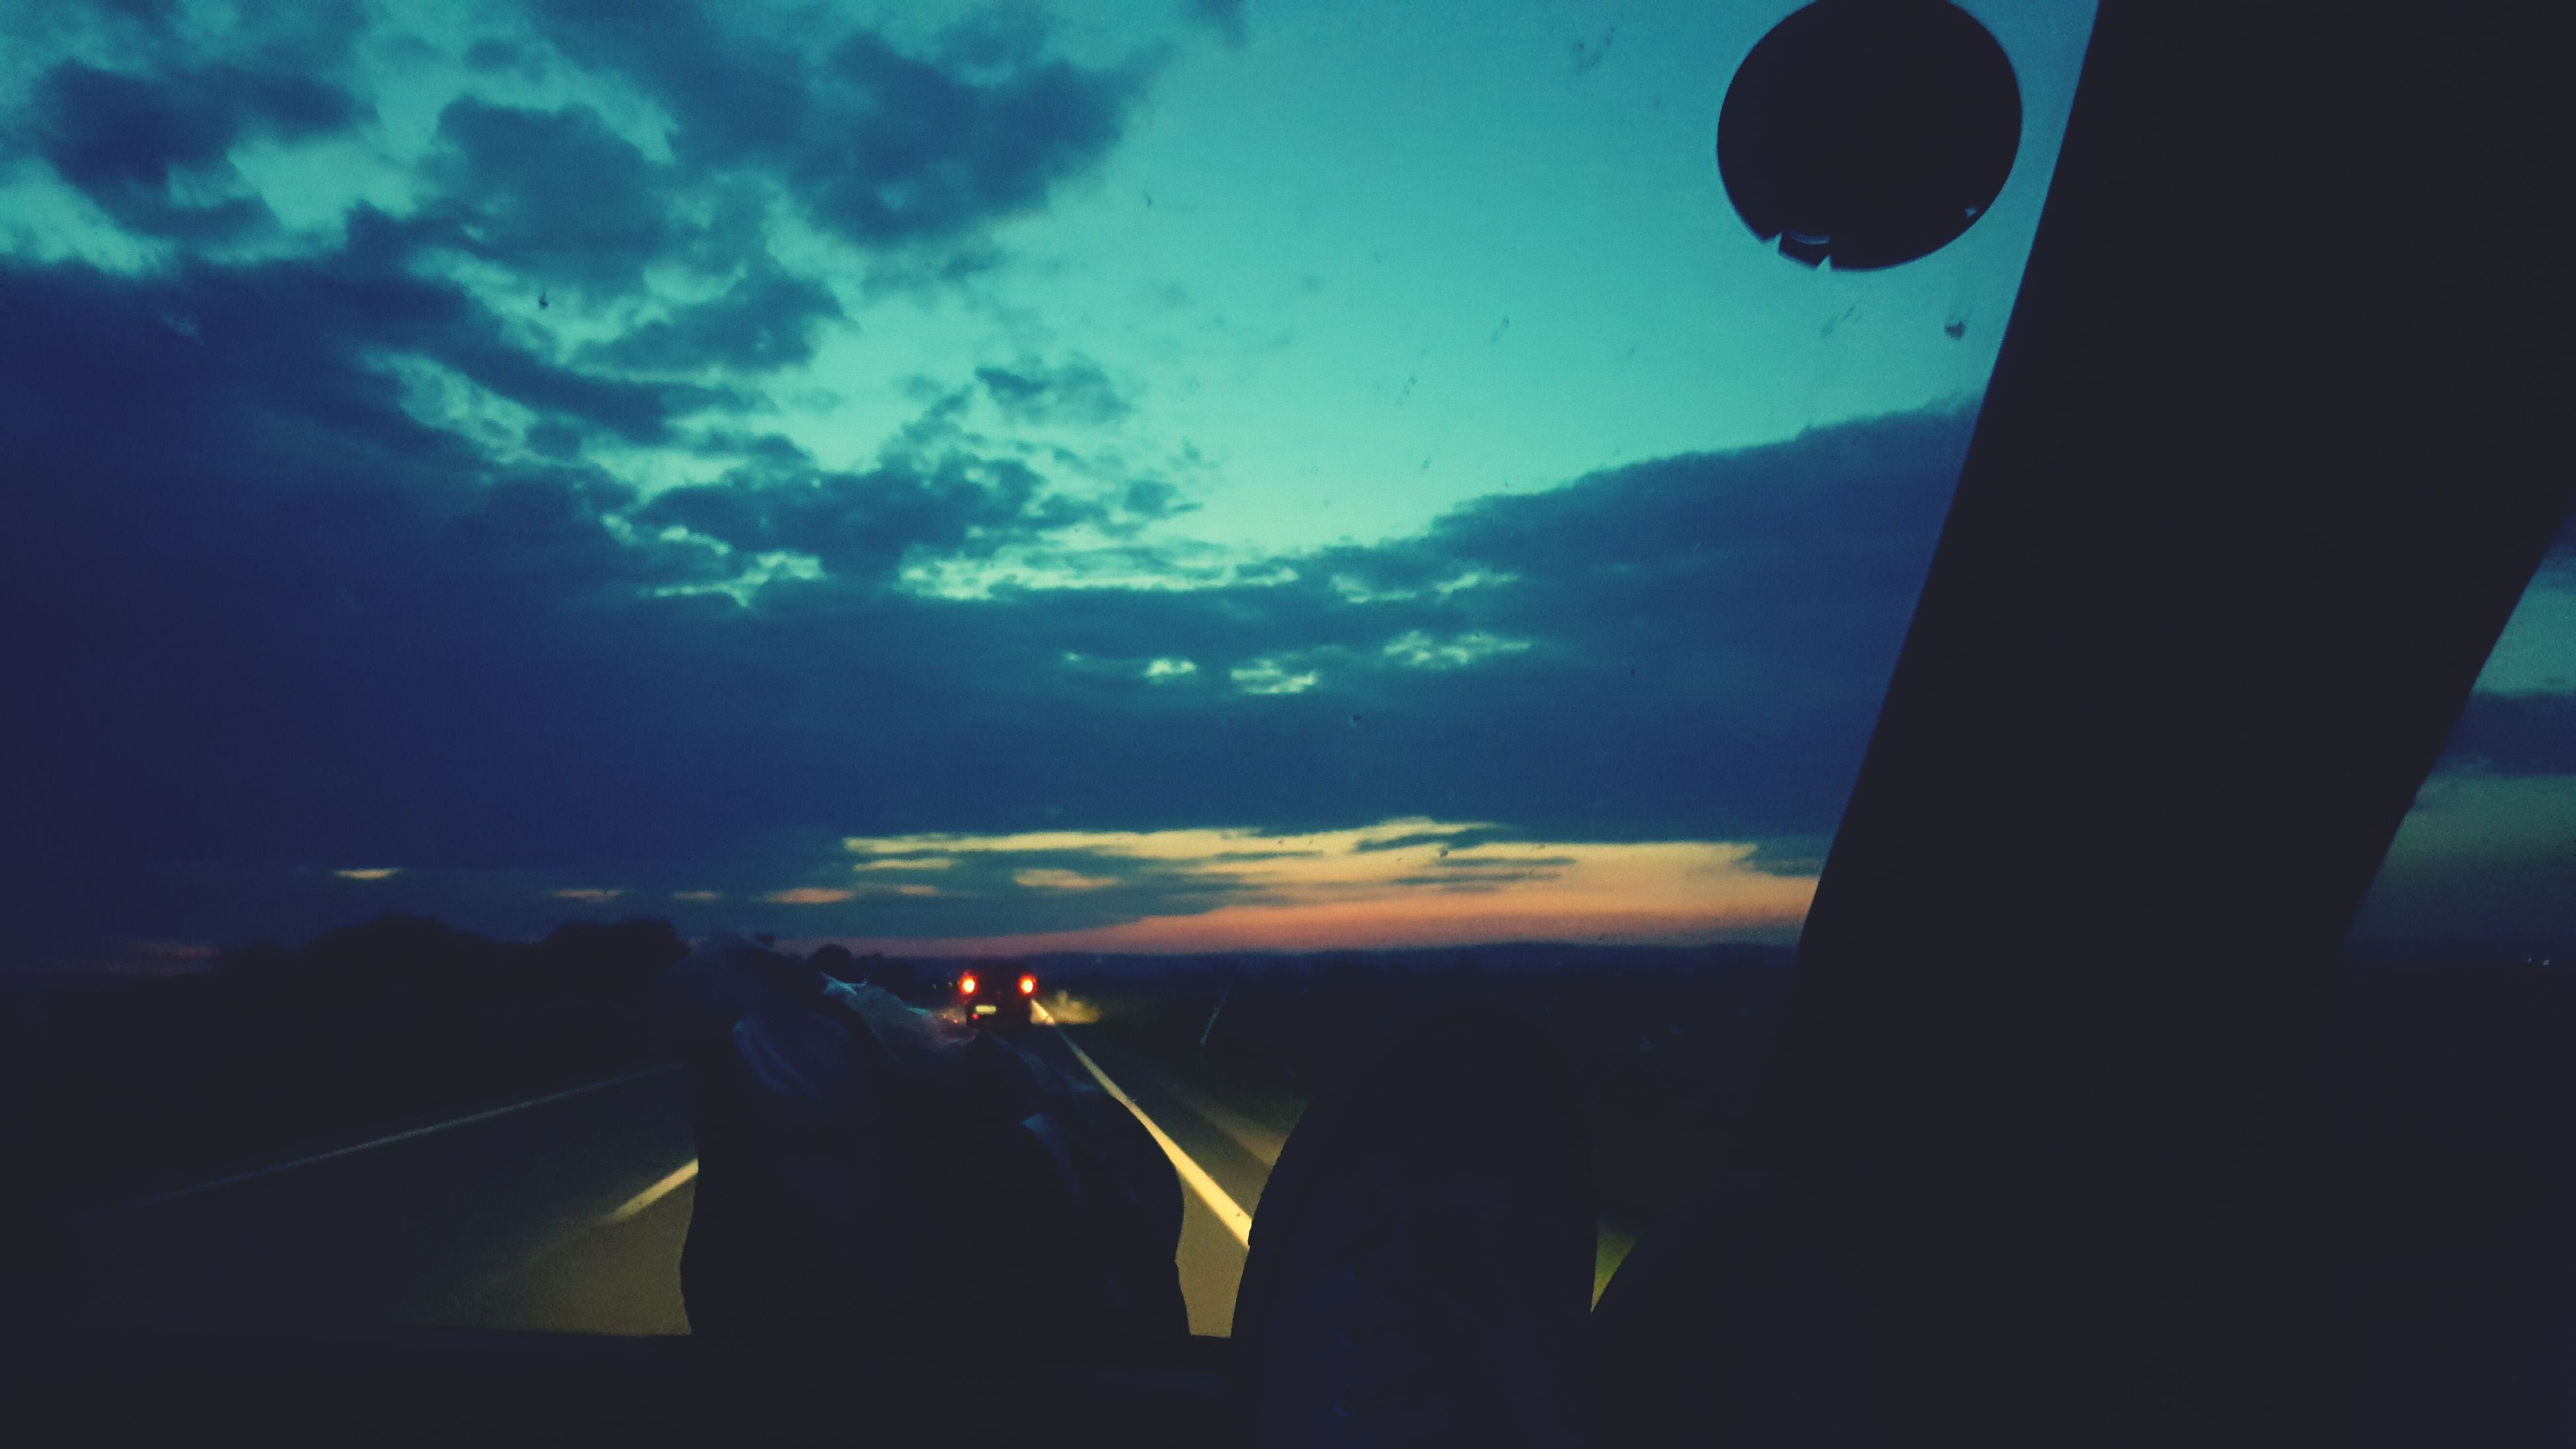 transportation, mode of transport, sky, vehicle interior, land vehicle, cloud - sky, sunset, windshield, on the move, journey, part of, road, cloud, cropped, nature, cloudy, beauty in nature, scenics, landscape, no people, outdoors, dark, blue